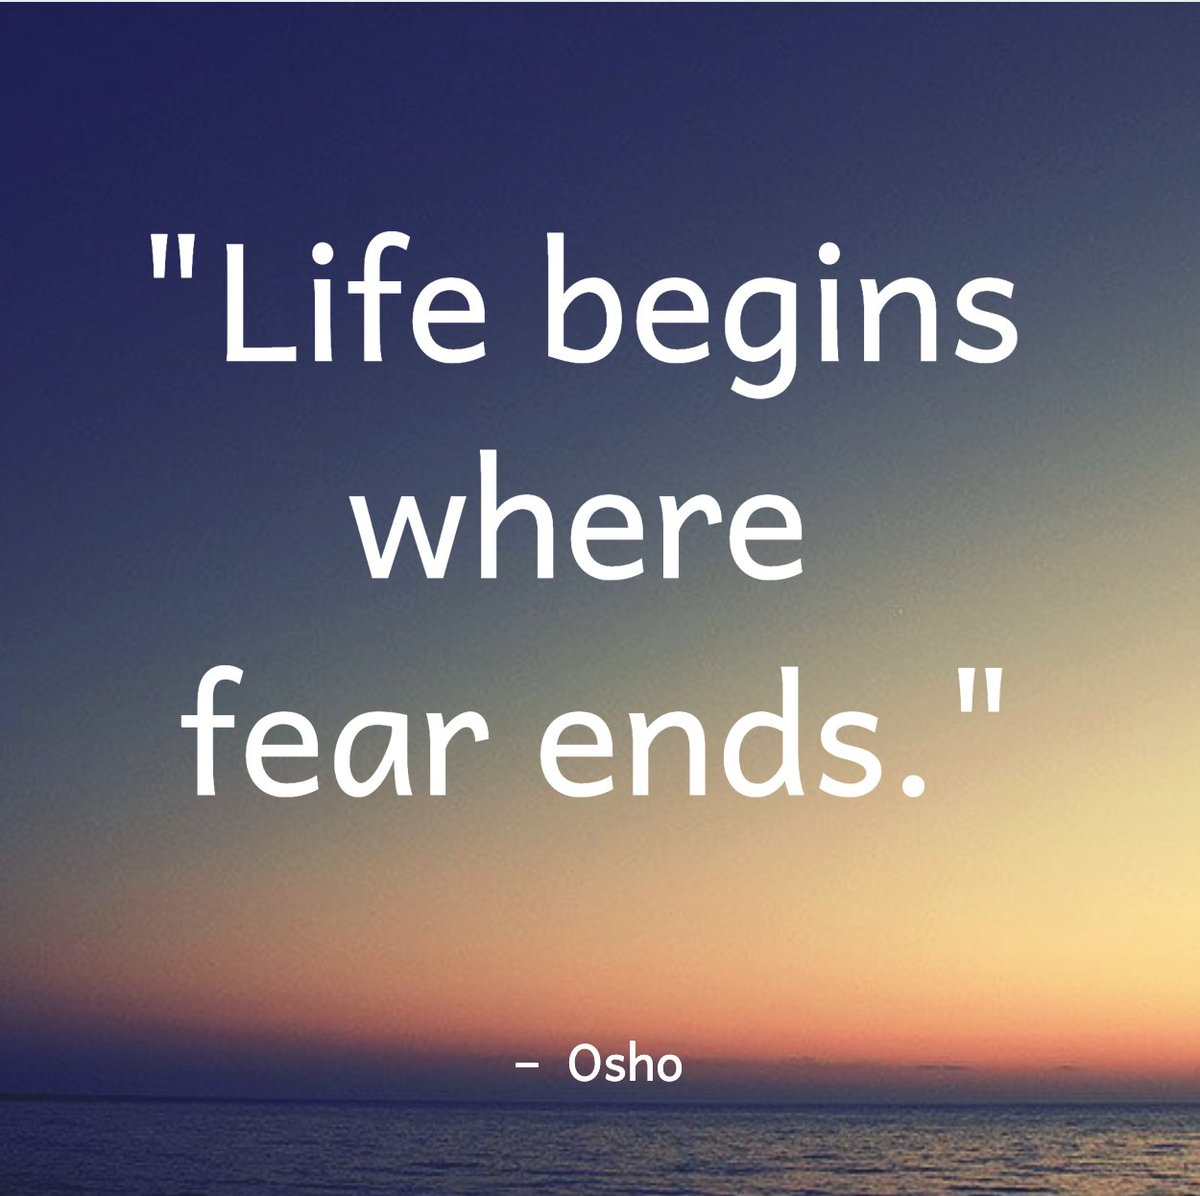 """Life begins where fear ends."" ― Osho   • • •  #Osho #WednesdayWisdom #inspirationalquotes #inspiration #GinaMadeya #dowhatyoulove #lovewhatyoudo #liveyourpassion #followyourdreams https://t.co/dsl70sBaEb"